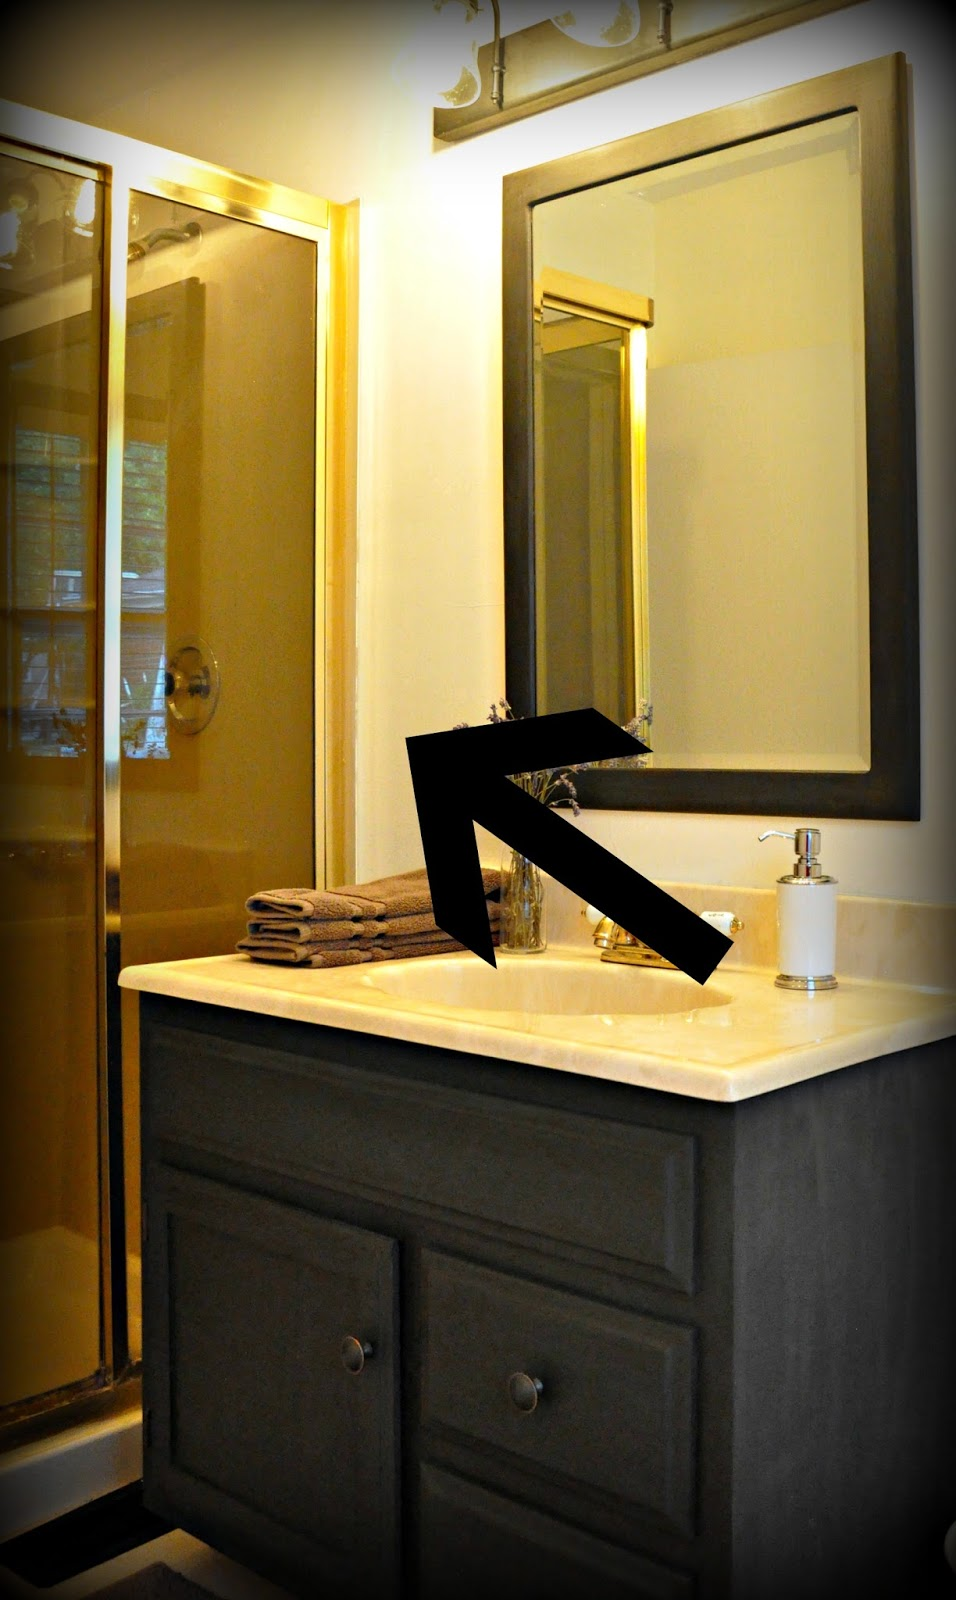 Updating Bathroom Vanity Lights lowes bathroom light fixtures brushed nickel. bathroom. . medium